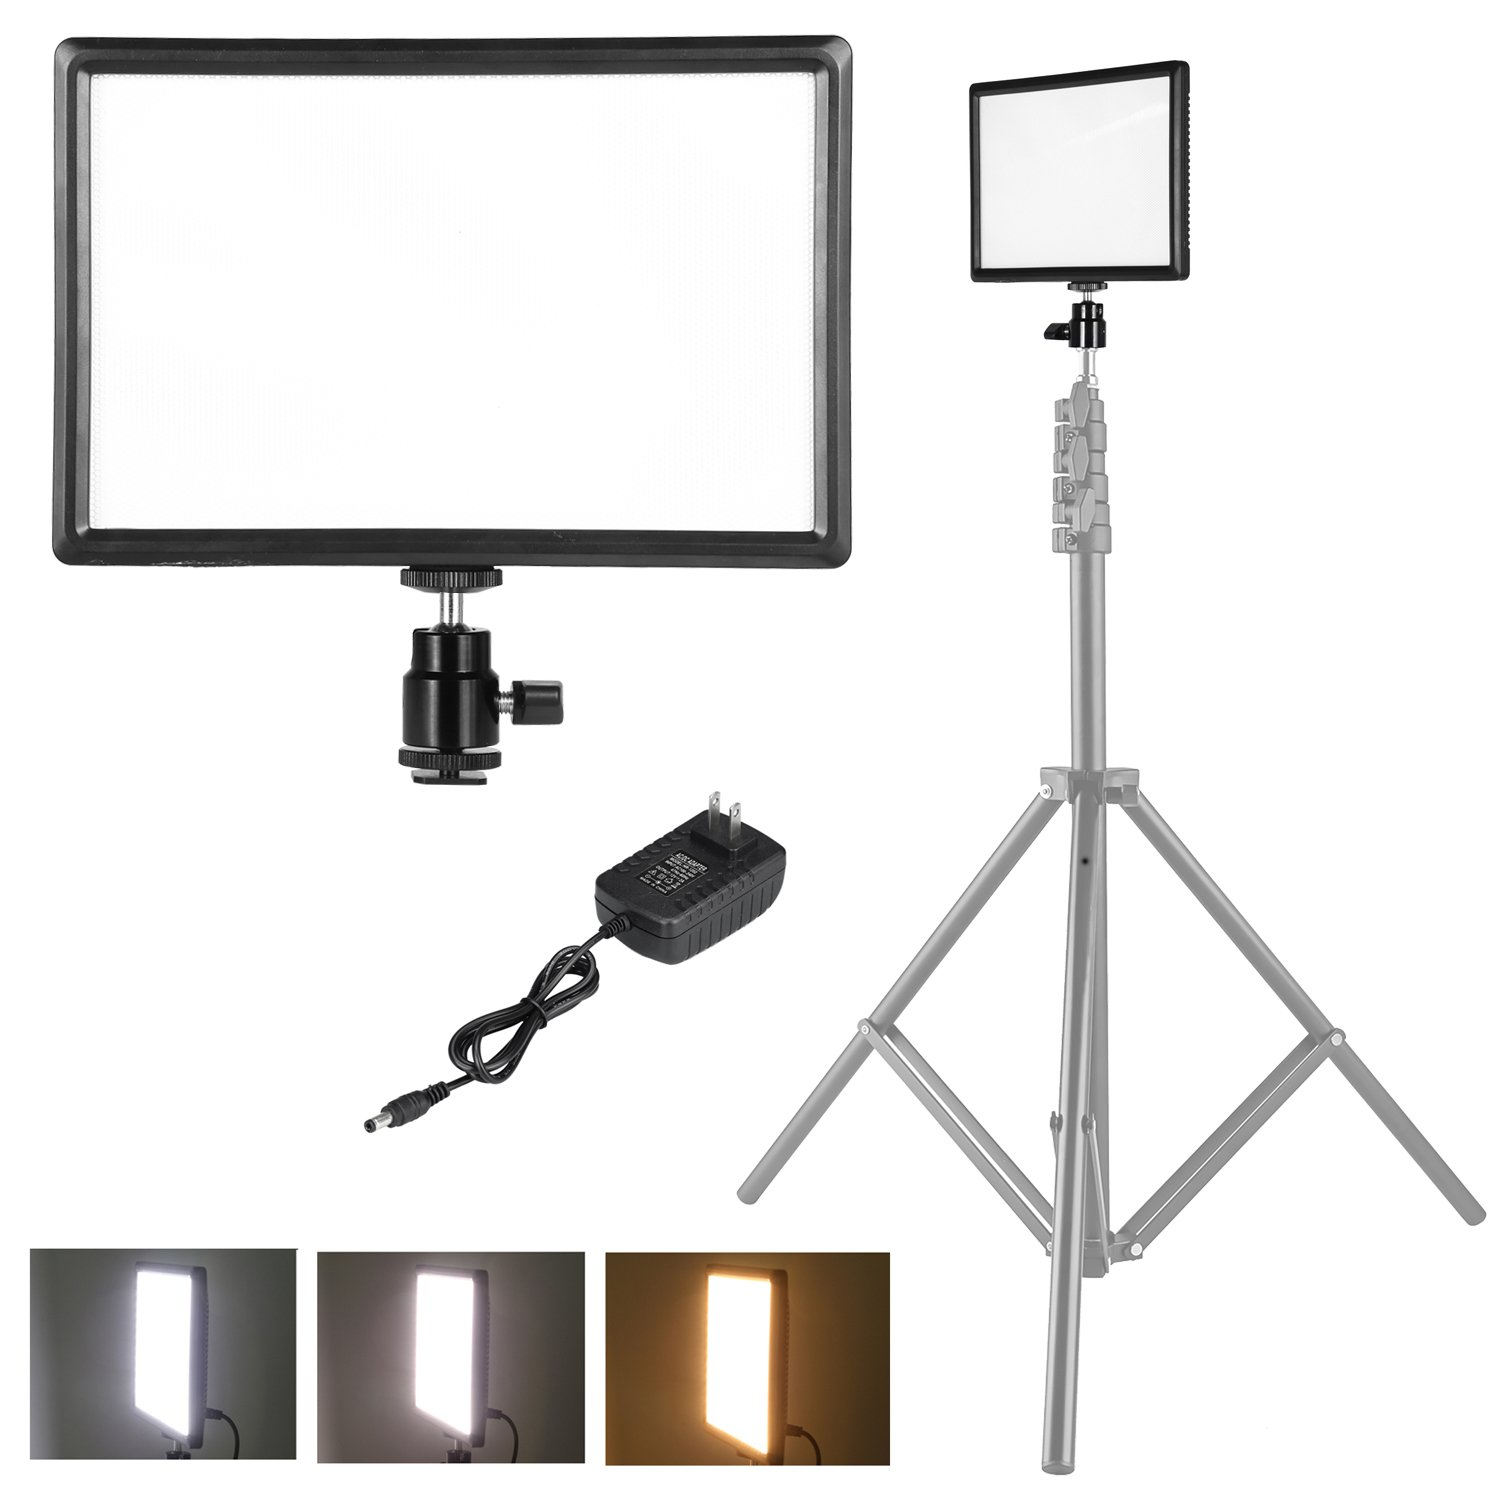 pangshi Ultra-Thin LED Video Light Panel with Hot Shoe Mount Compatible with Canon Nikon Sony DSLR Camera Camcorder, Dimmable Color Temperature 3200K-6200K and Brightness 10%-100%